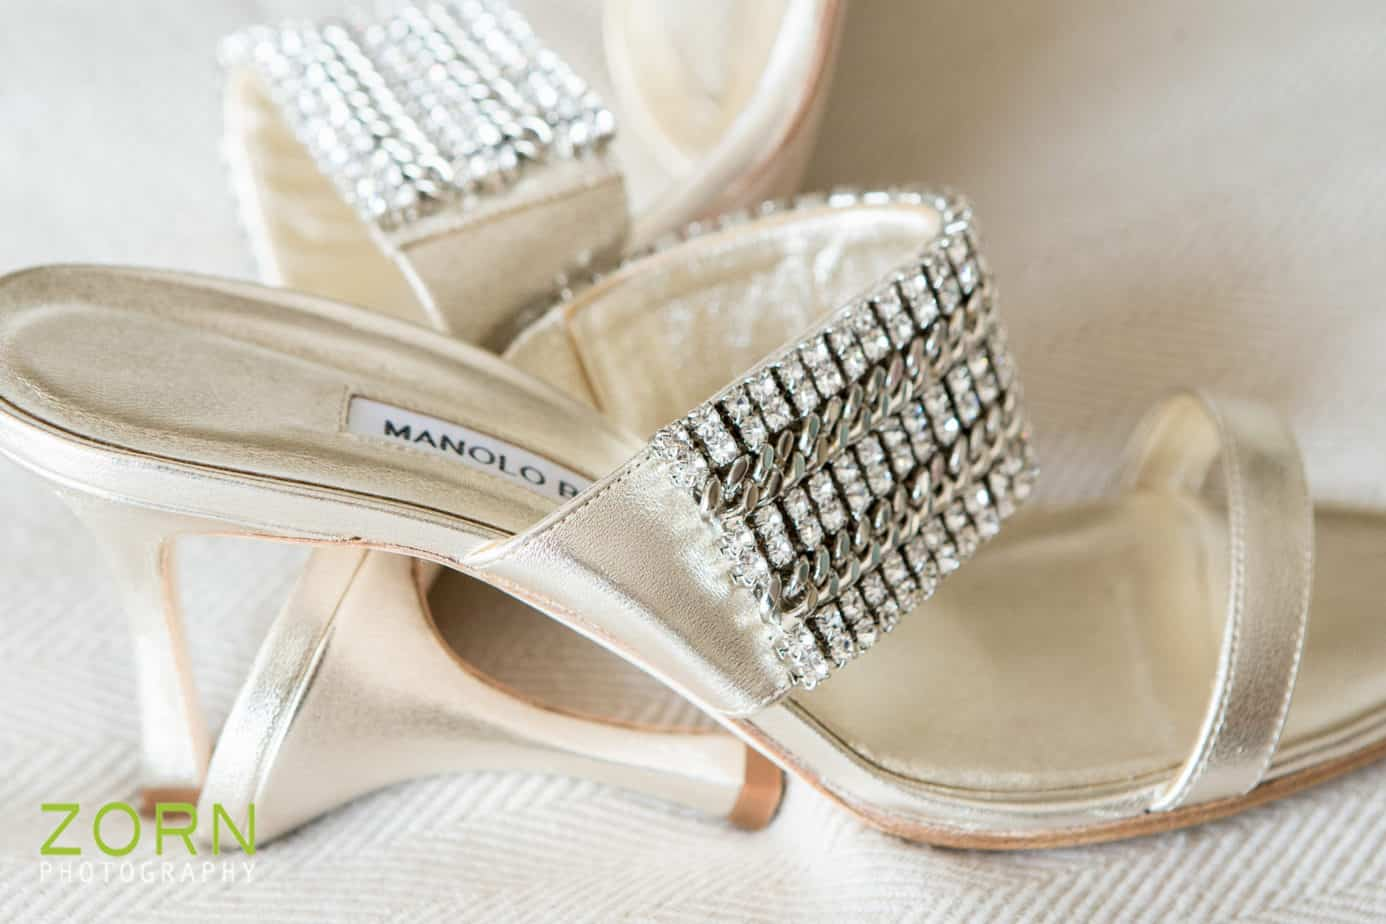 manolo blahnik wedding shoes_cloud 9